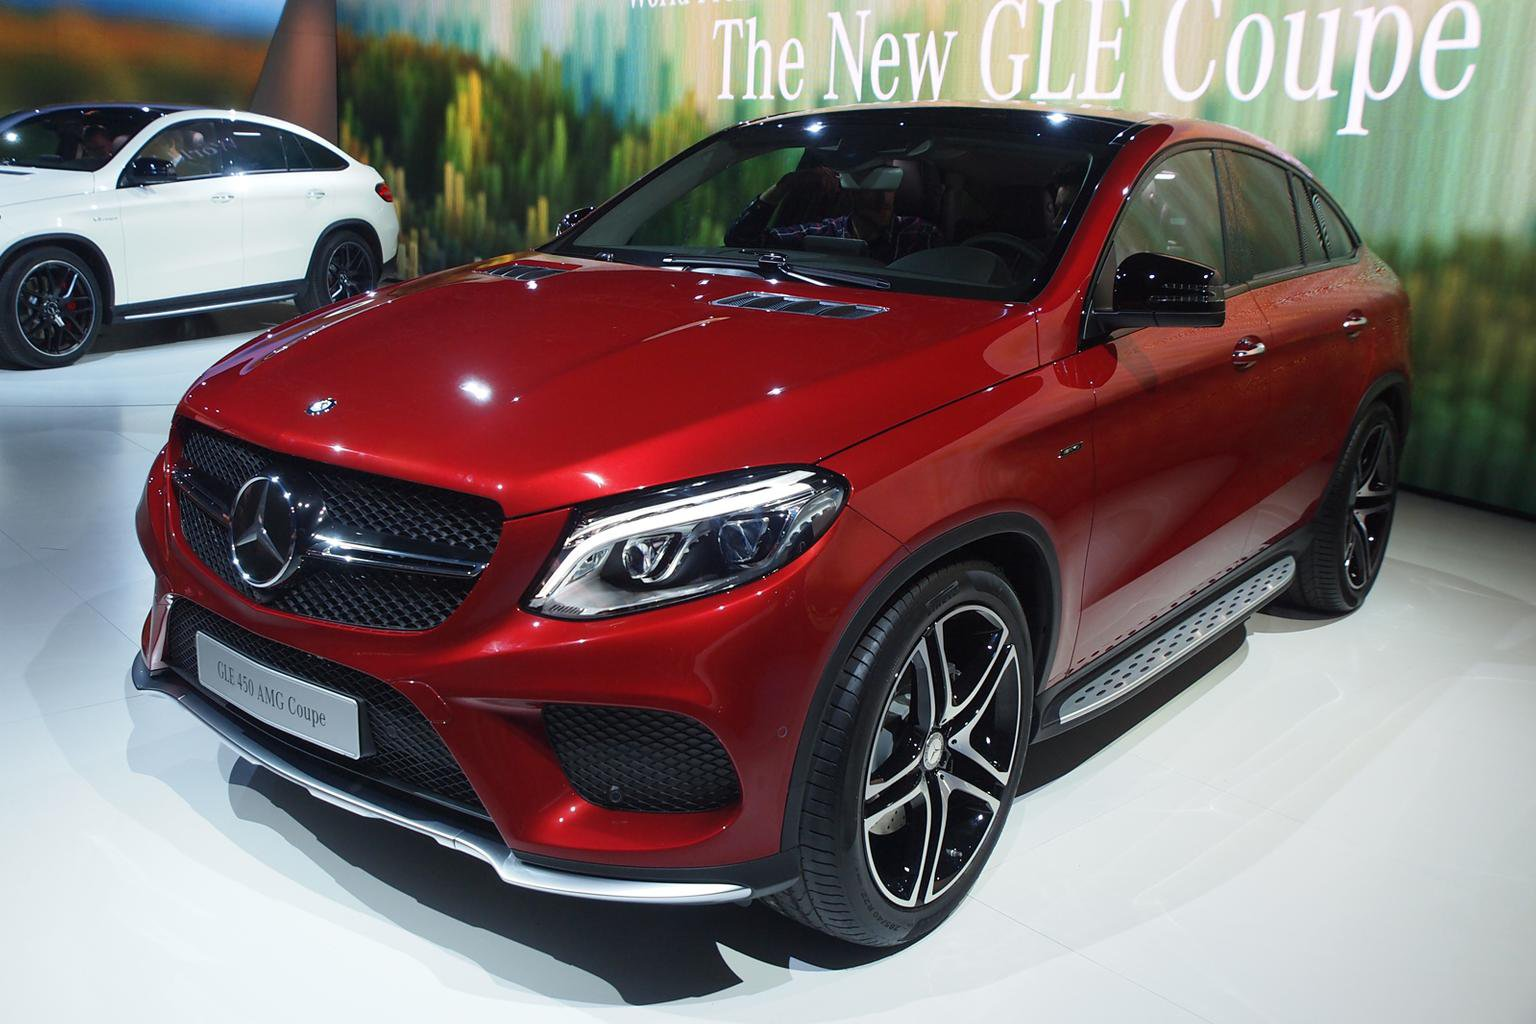 2015 Mercedes-Benz GLE Coupe - new pictures, on-sale date and engine details